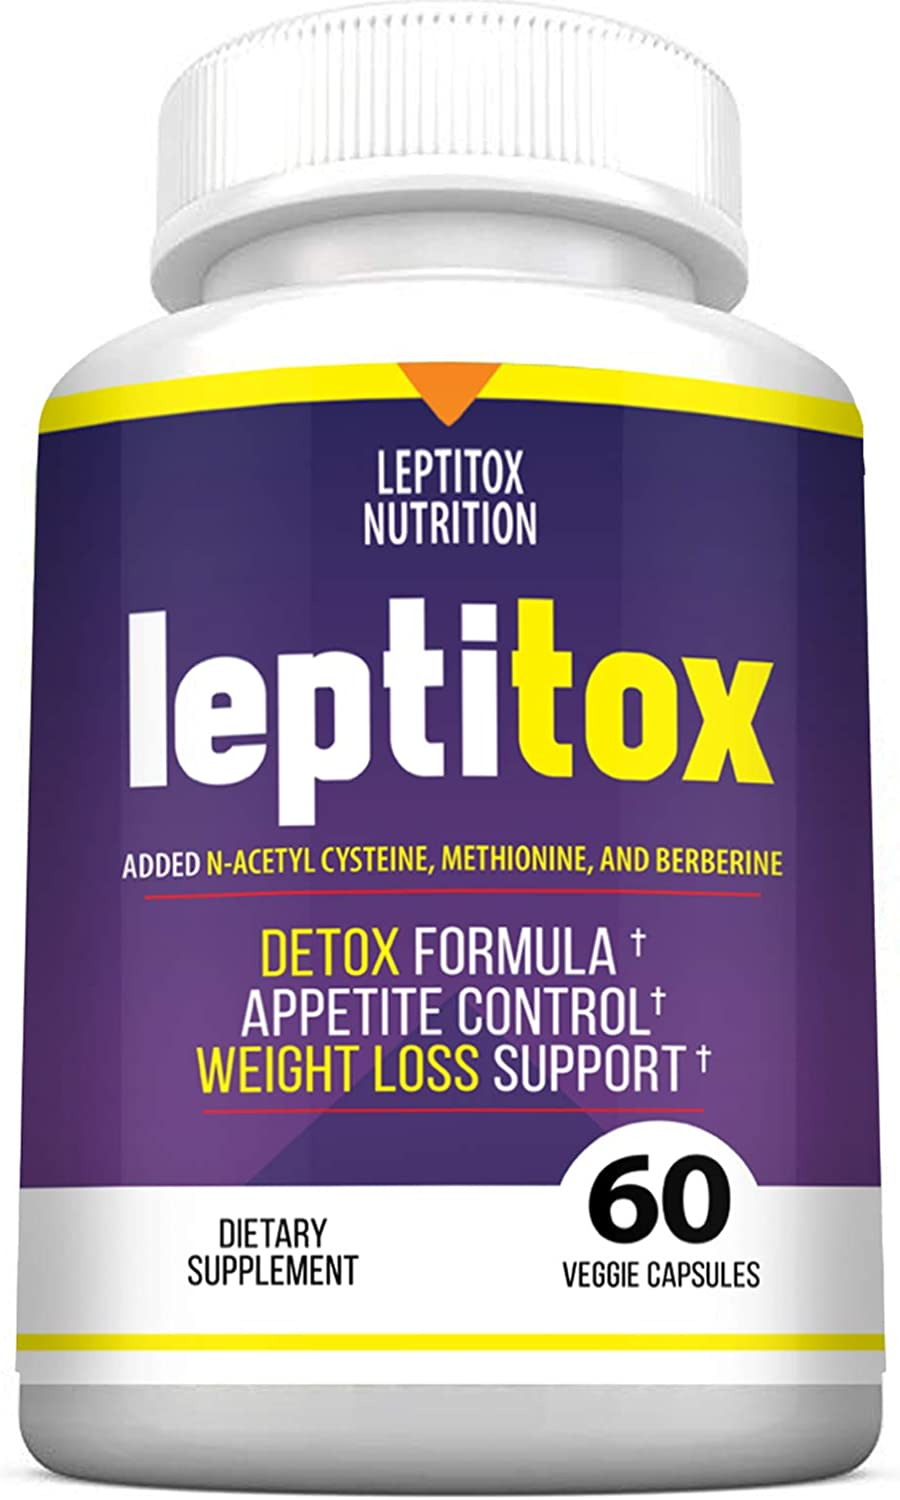 Weight Loss Extended Warranty Coupon Code